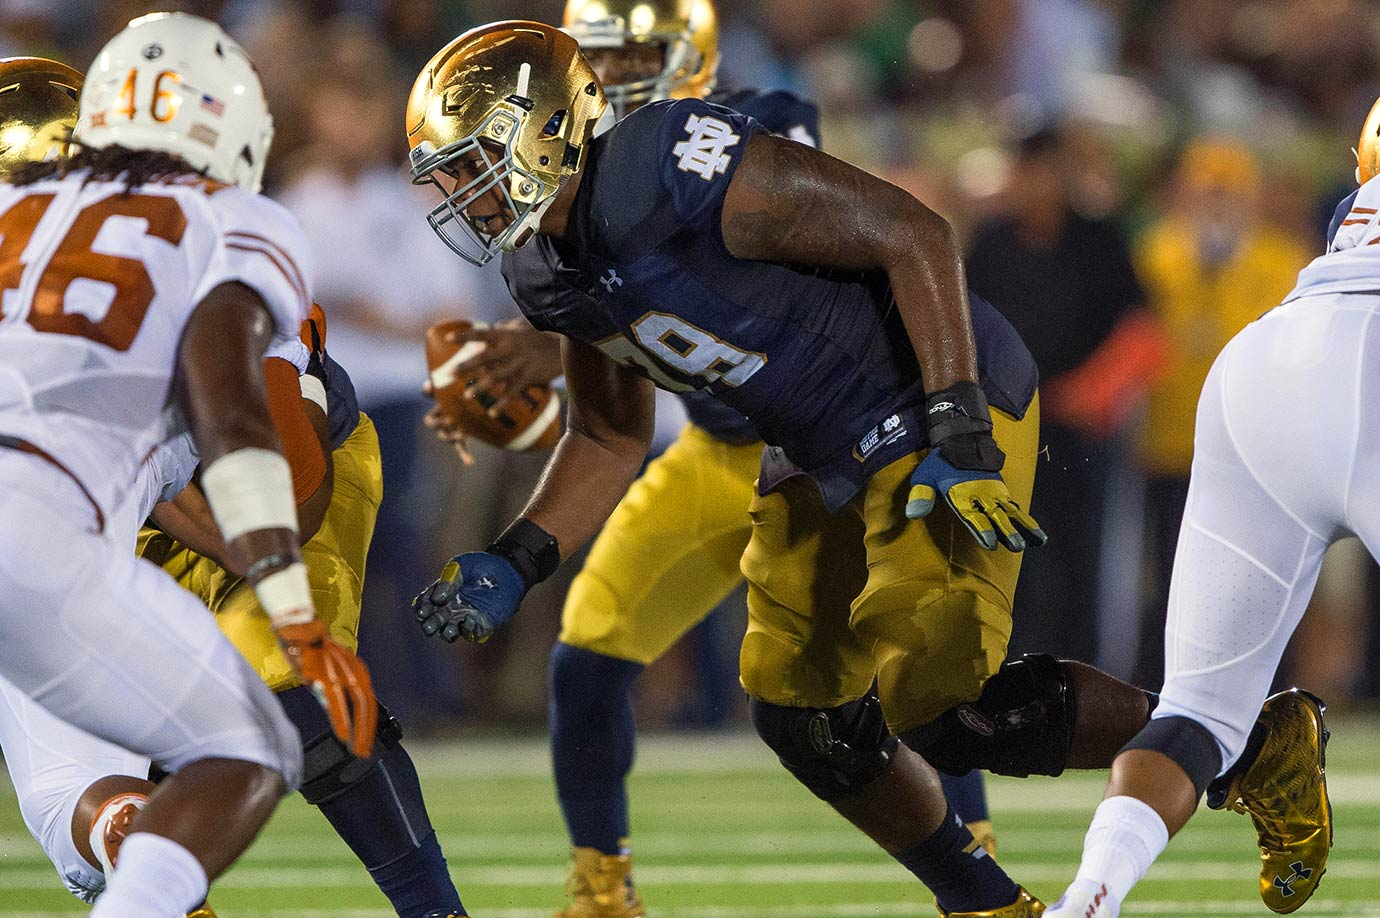 Splitting hairs between Stanley and Tunsil. If they both turn pro, as expected, count on them jockeying for position near the top of the draft—the No. 1 pick is in play for both. Stanley's size and footwork had him on the NFL radar for the 2014 draft before he opted to stay at Notre Dame. He should be a long-term answer at left tackle.